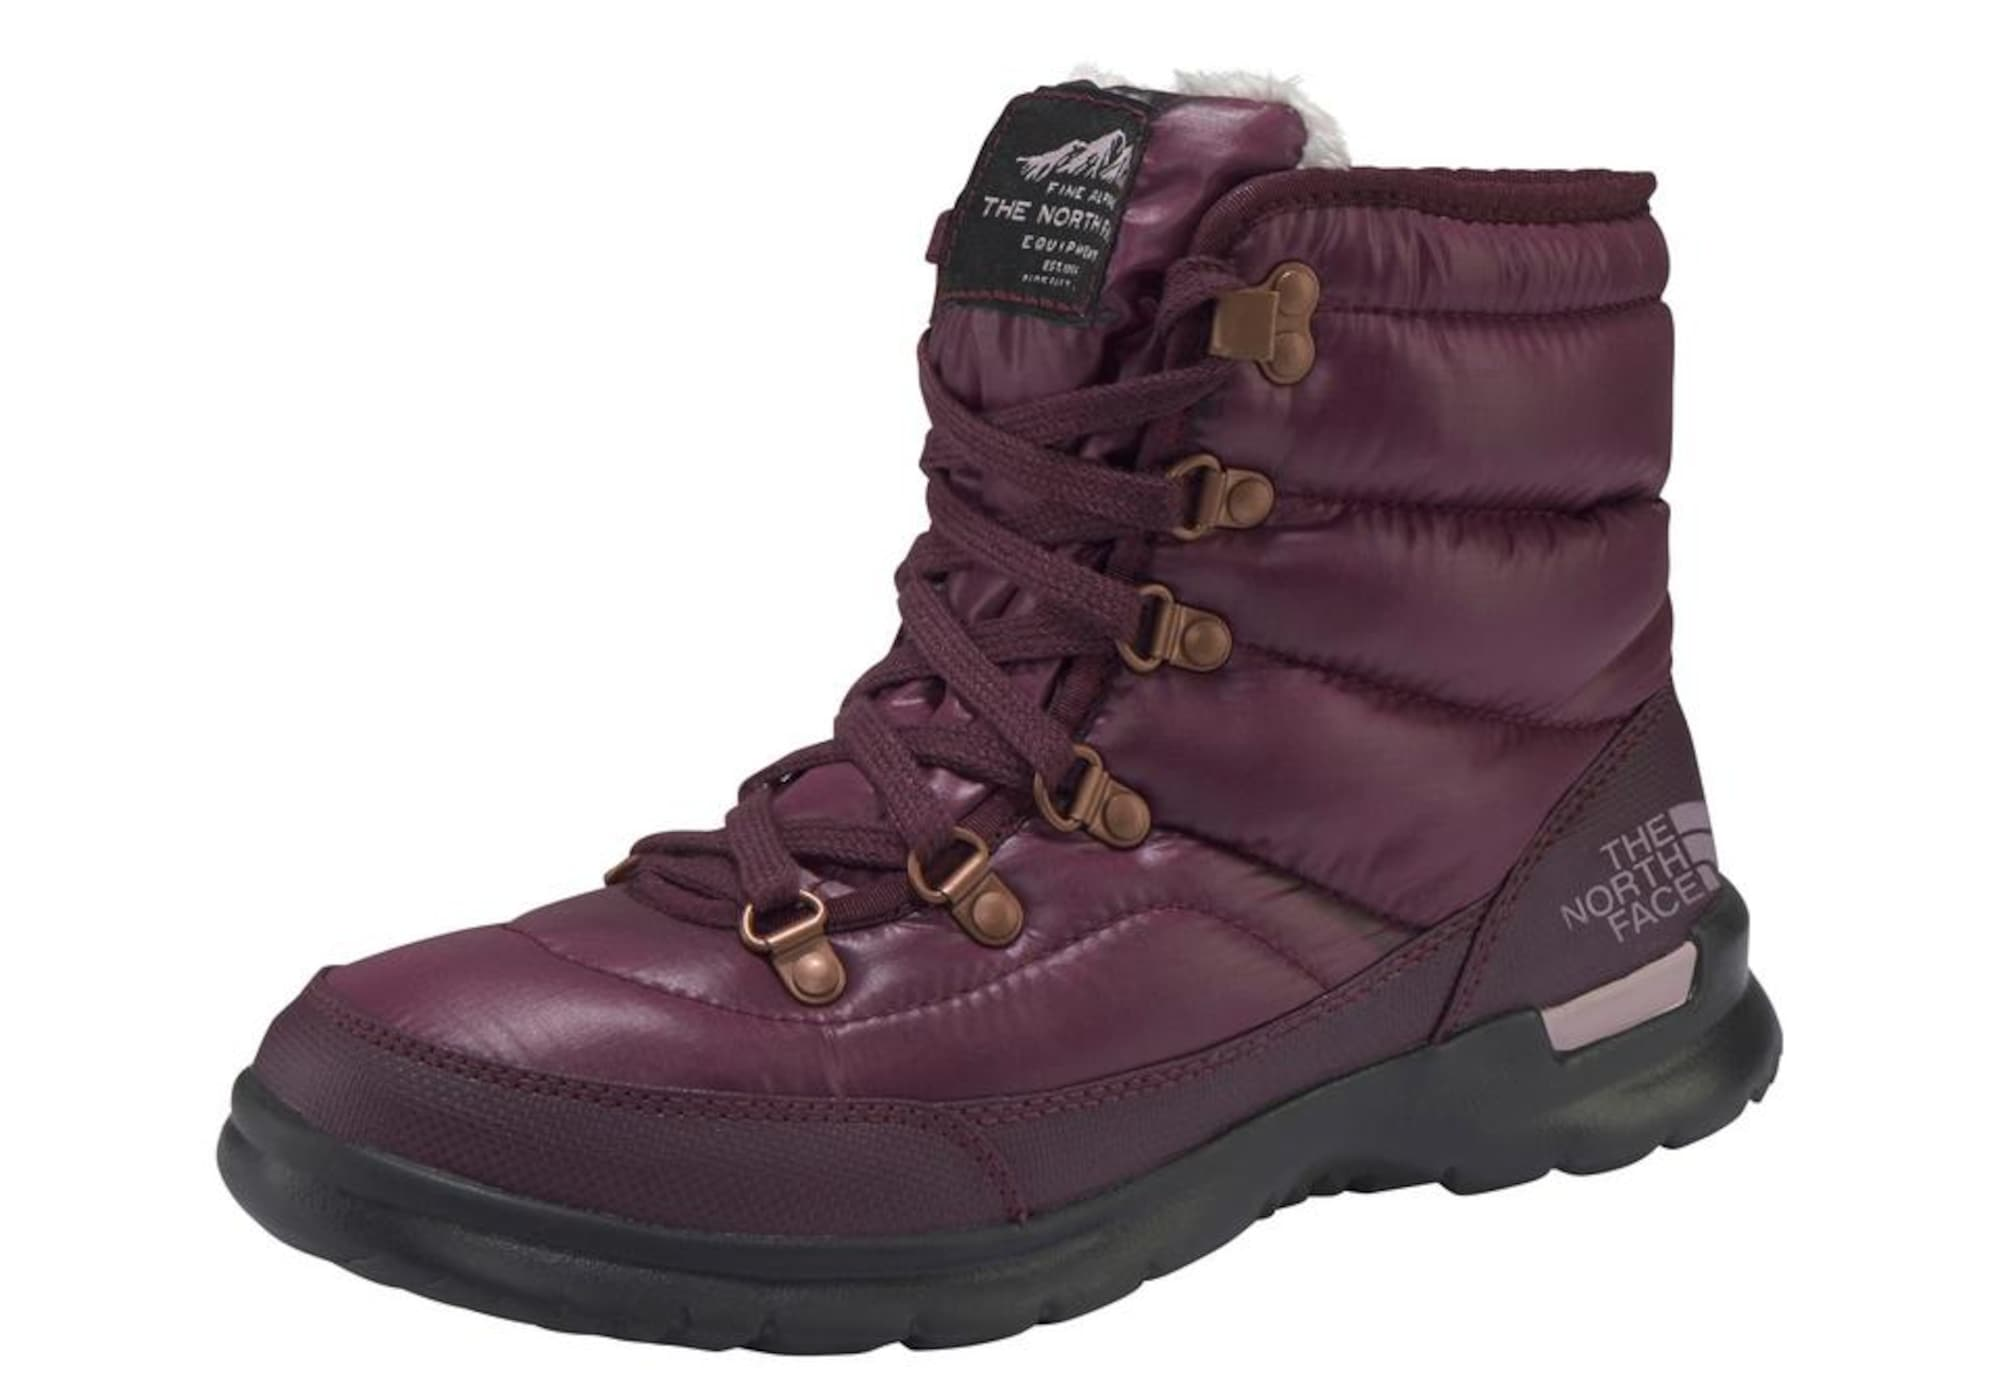 Outdoorwinterstiefel 'W Lace' | Schuhe > Outdoorschuhe > Outdoorwinterstiefel | The North Face